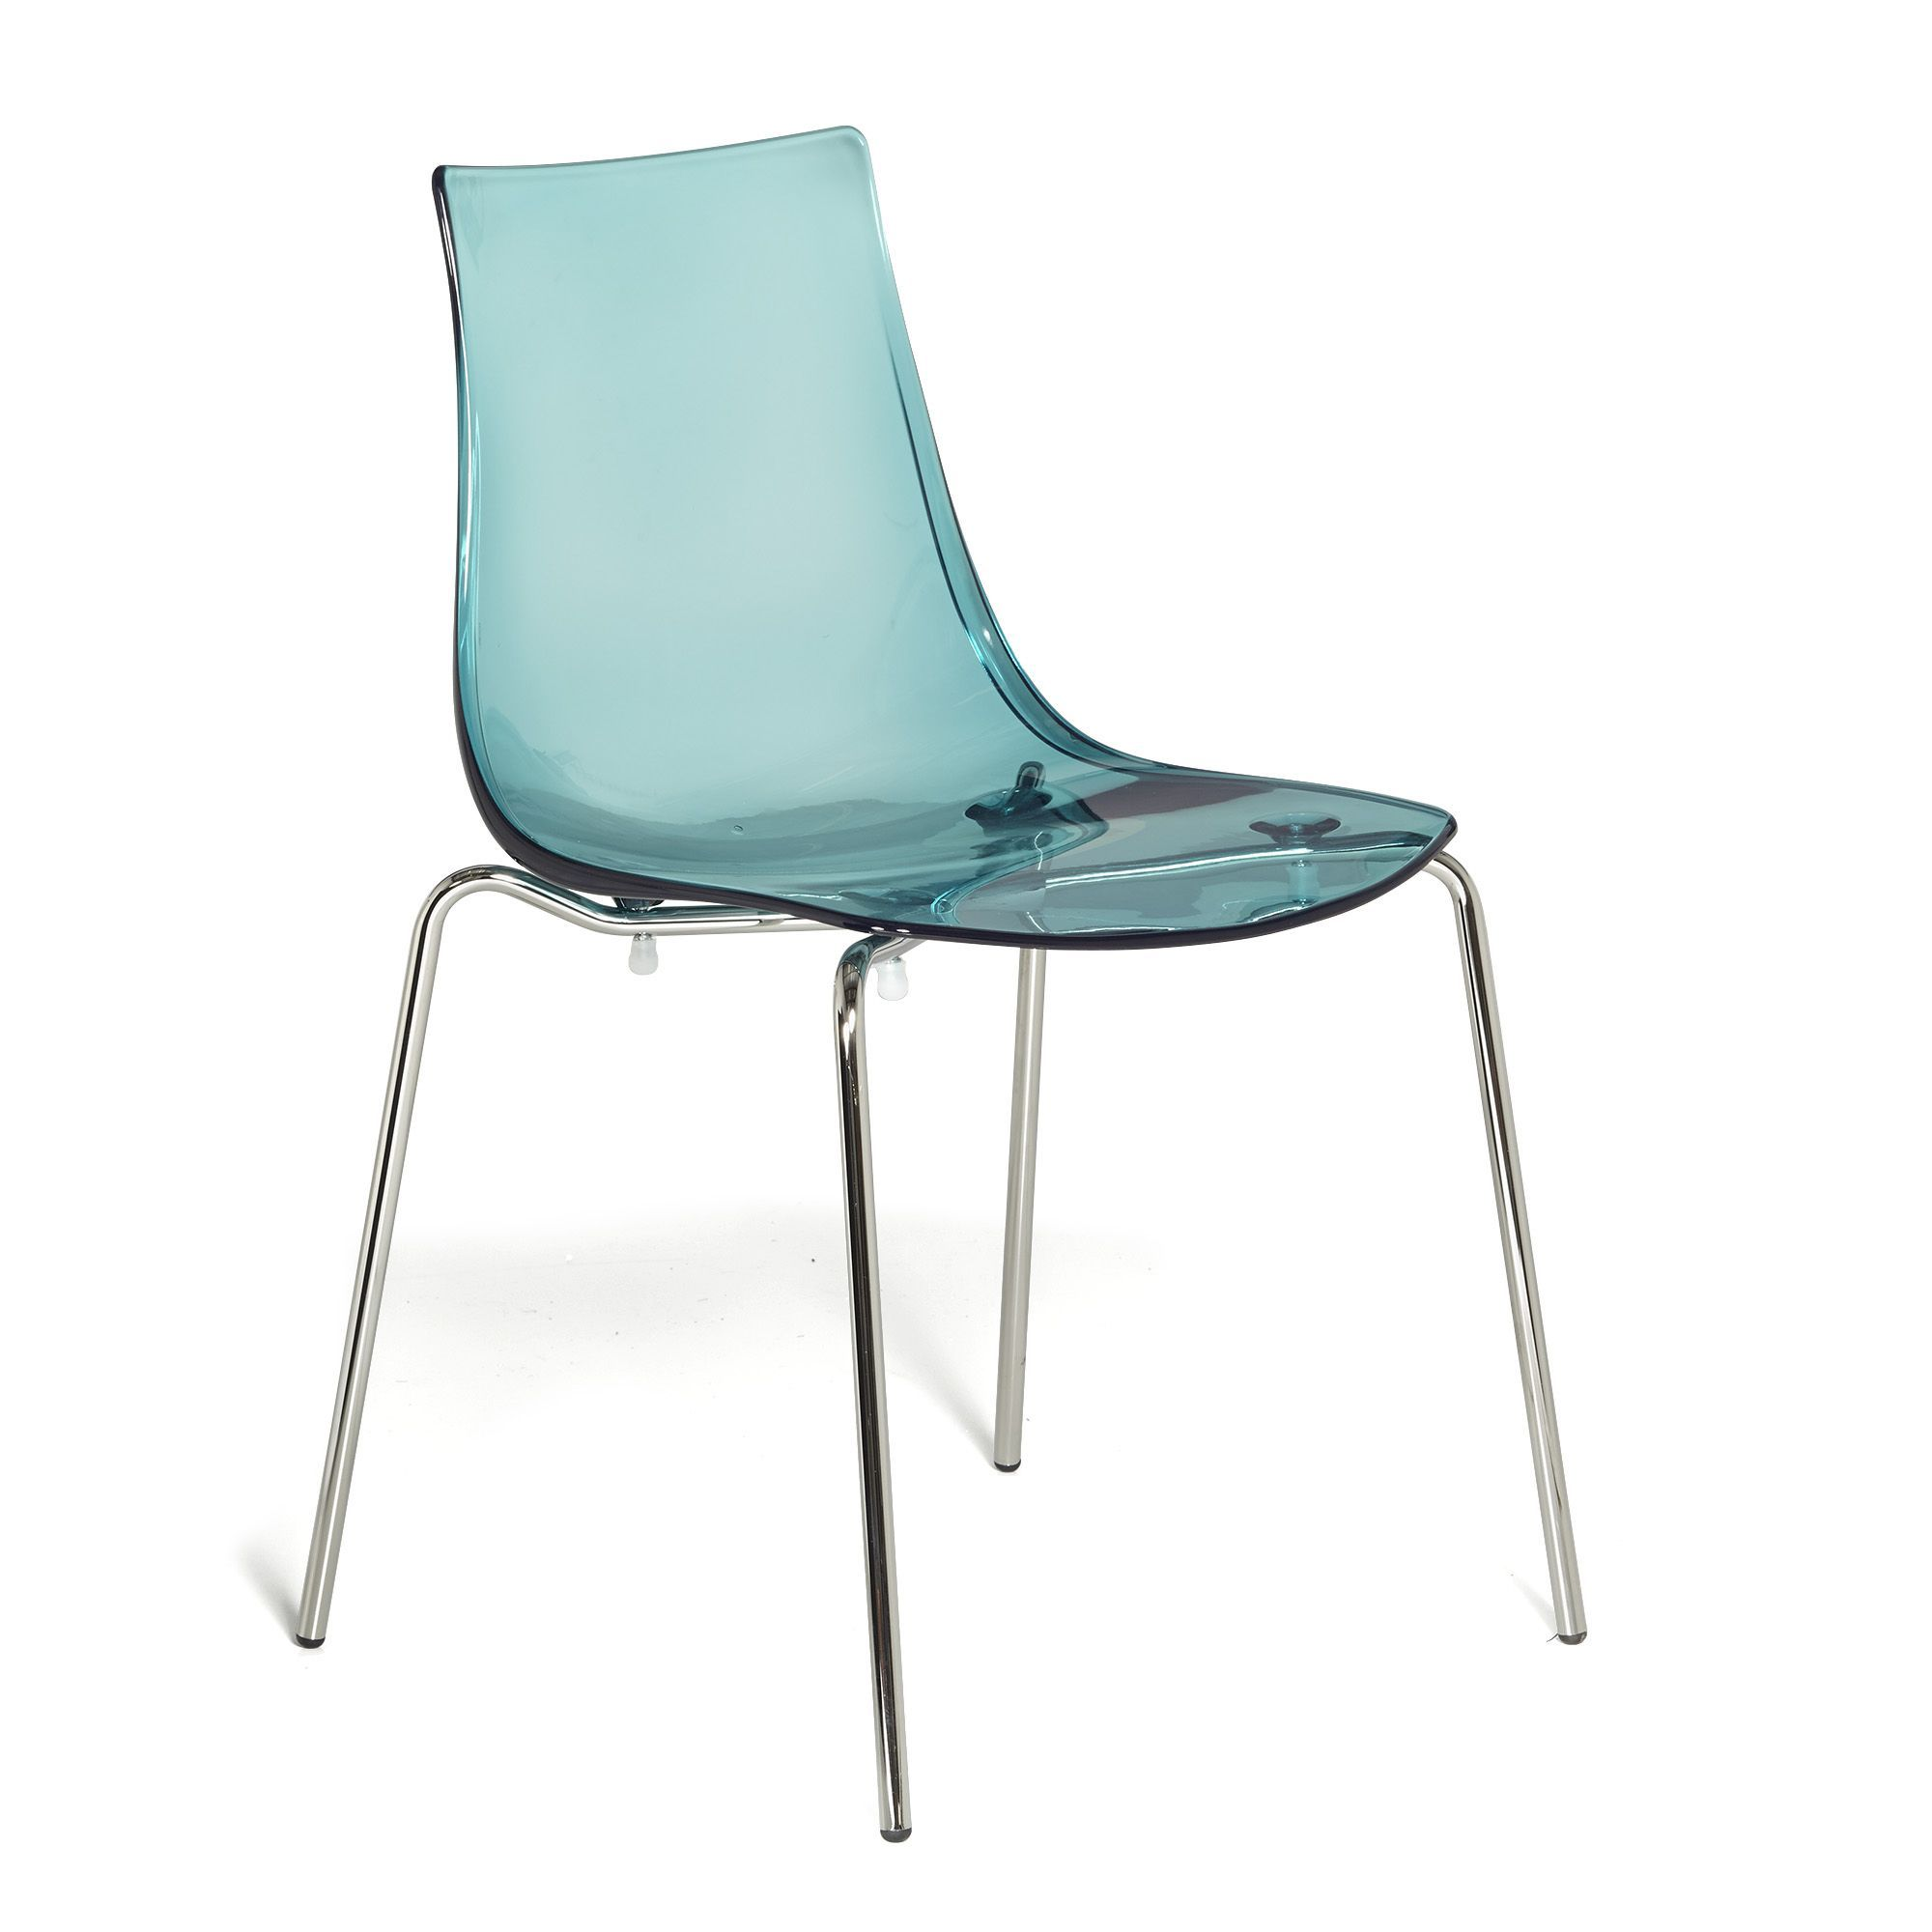 chaise empilable transparente bleue olivia chaises tables chaises salon salle